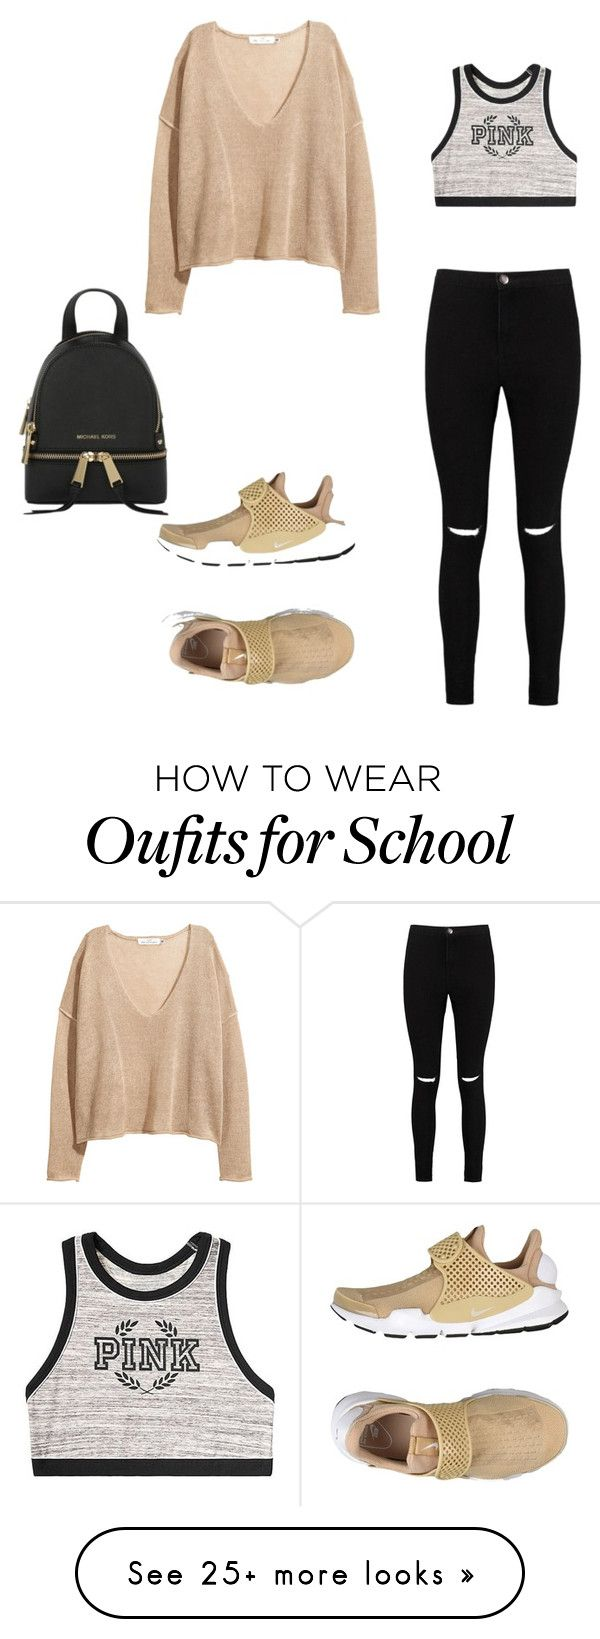 """school days"" by idebbieluna on Polyvore featuring NIKE, Boohoo, Victoria's Secret and MICHAEL Michael Kors"